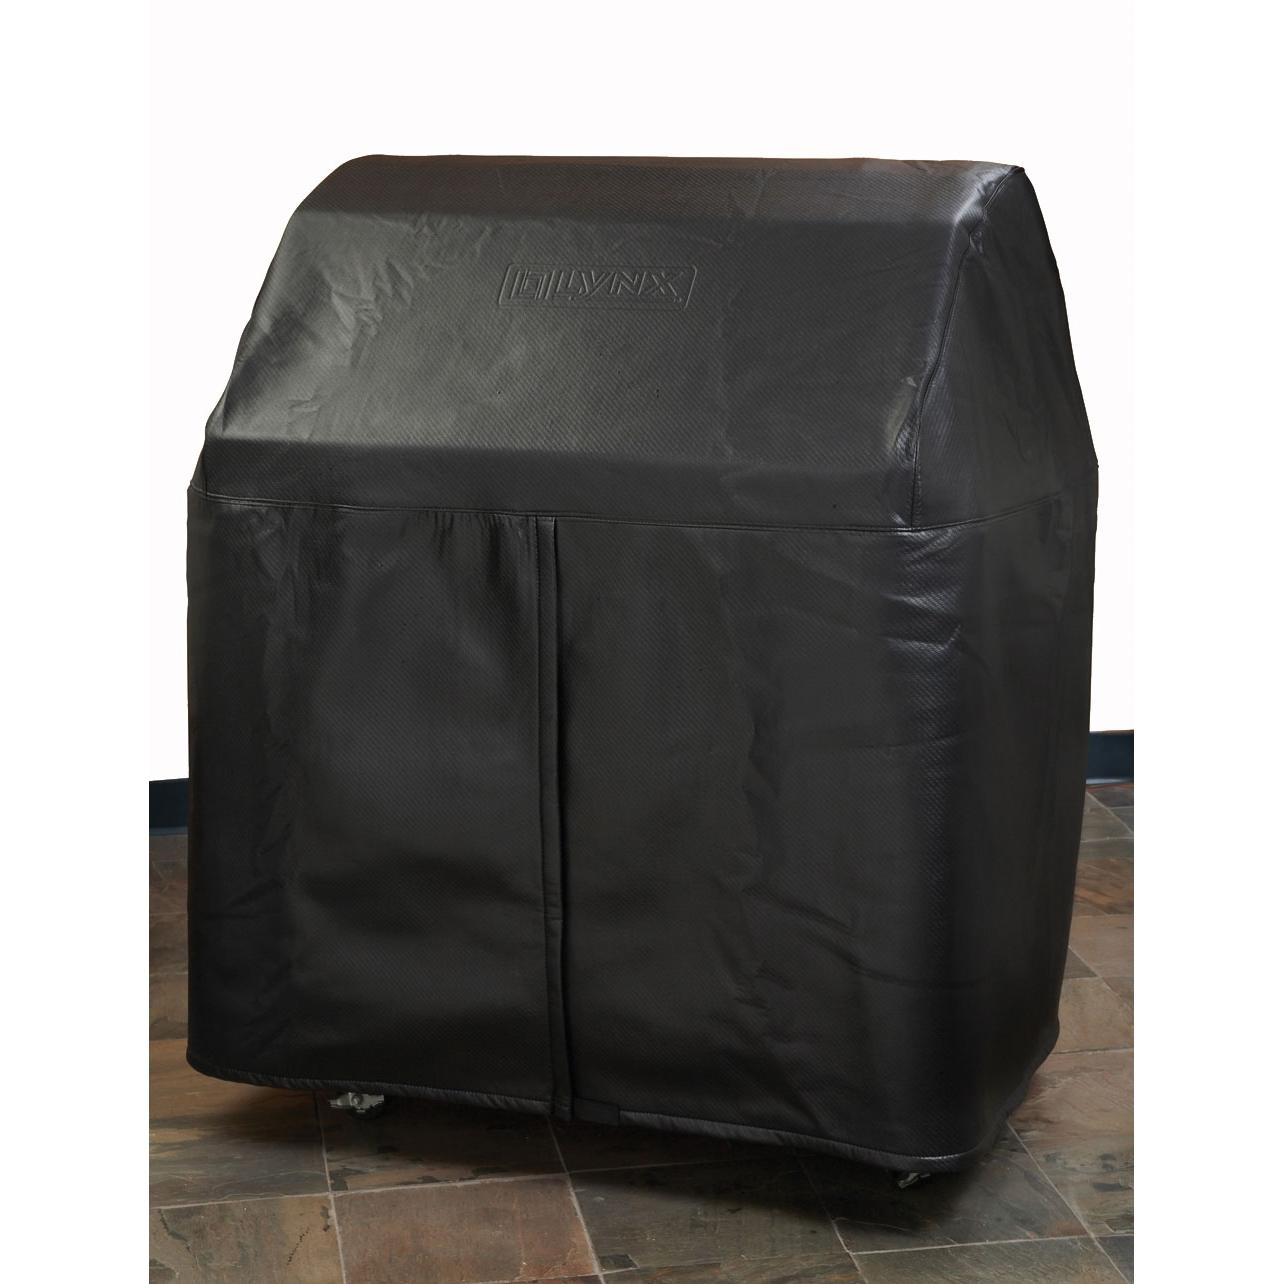 Lynx Custom Grill Cover For 27 Inch Gas Grill On Cart